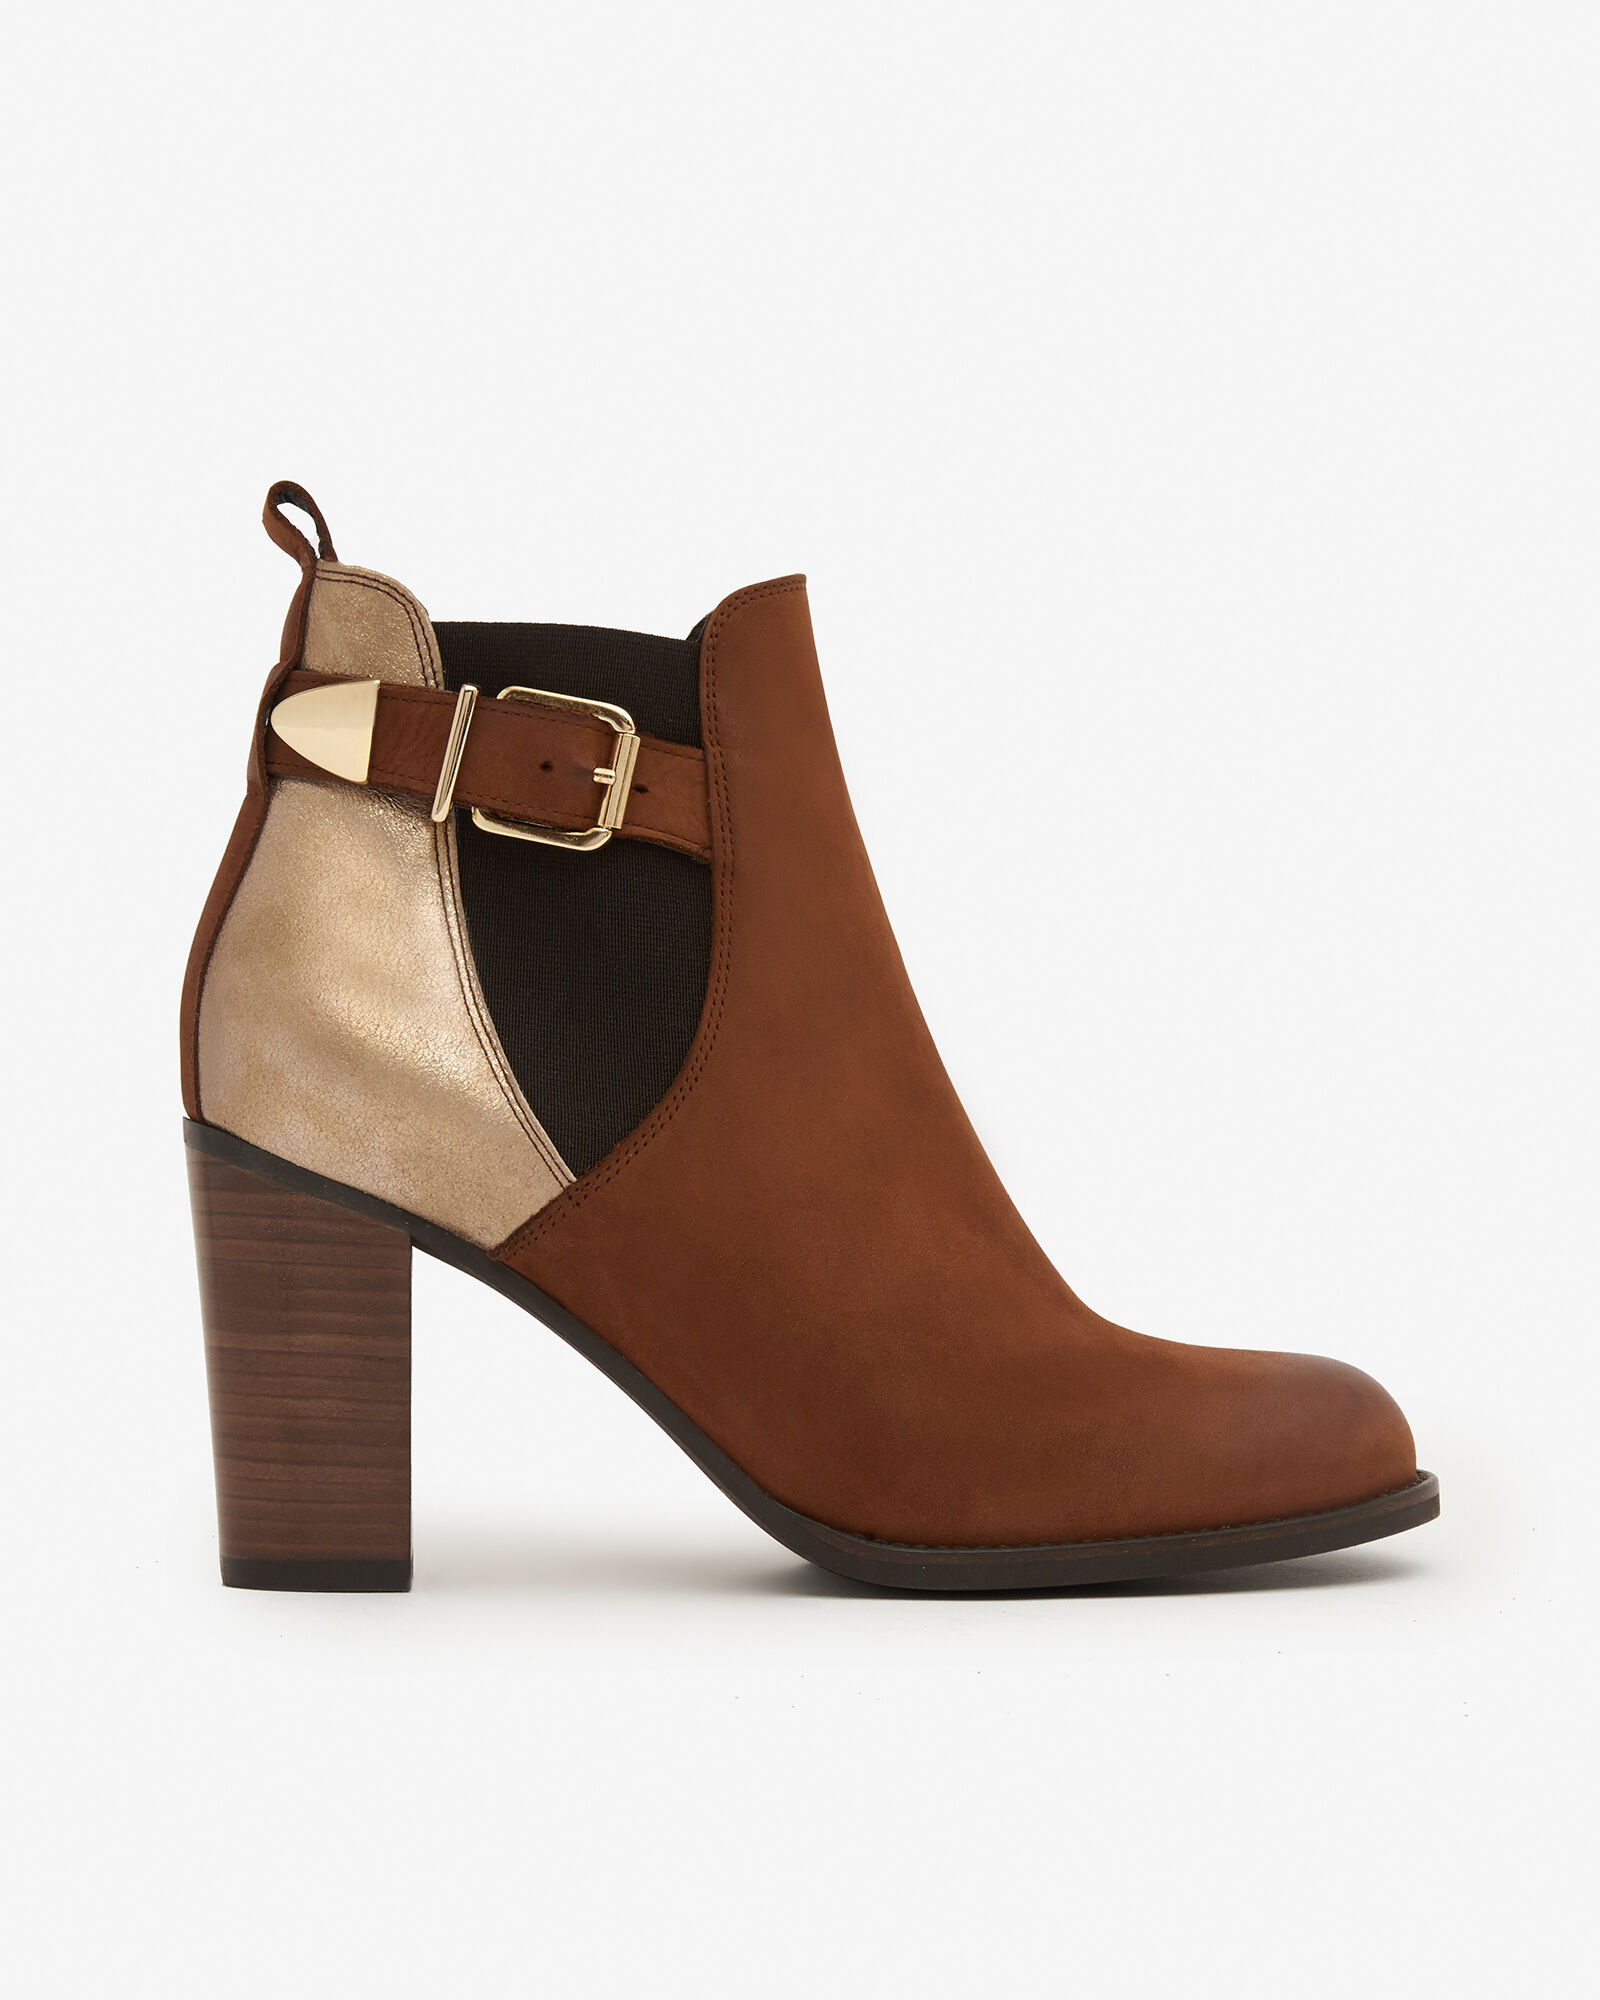 BOOTS ANDOTA CAMEL OR